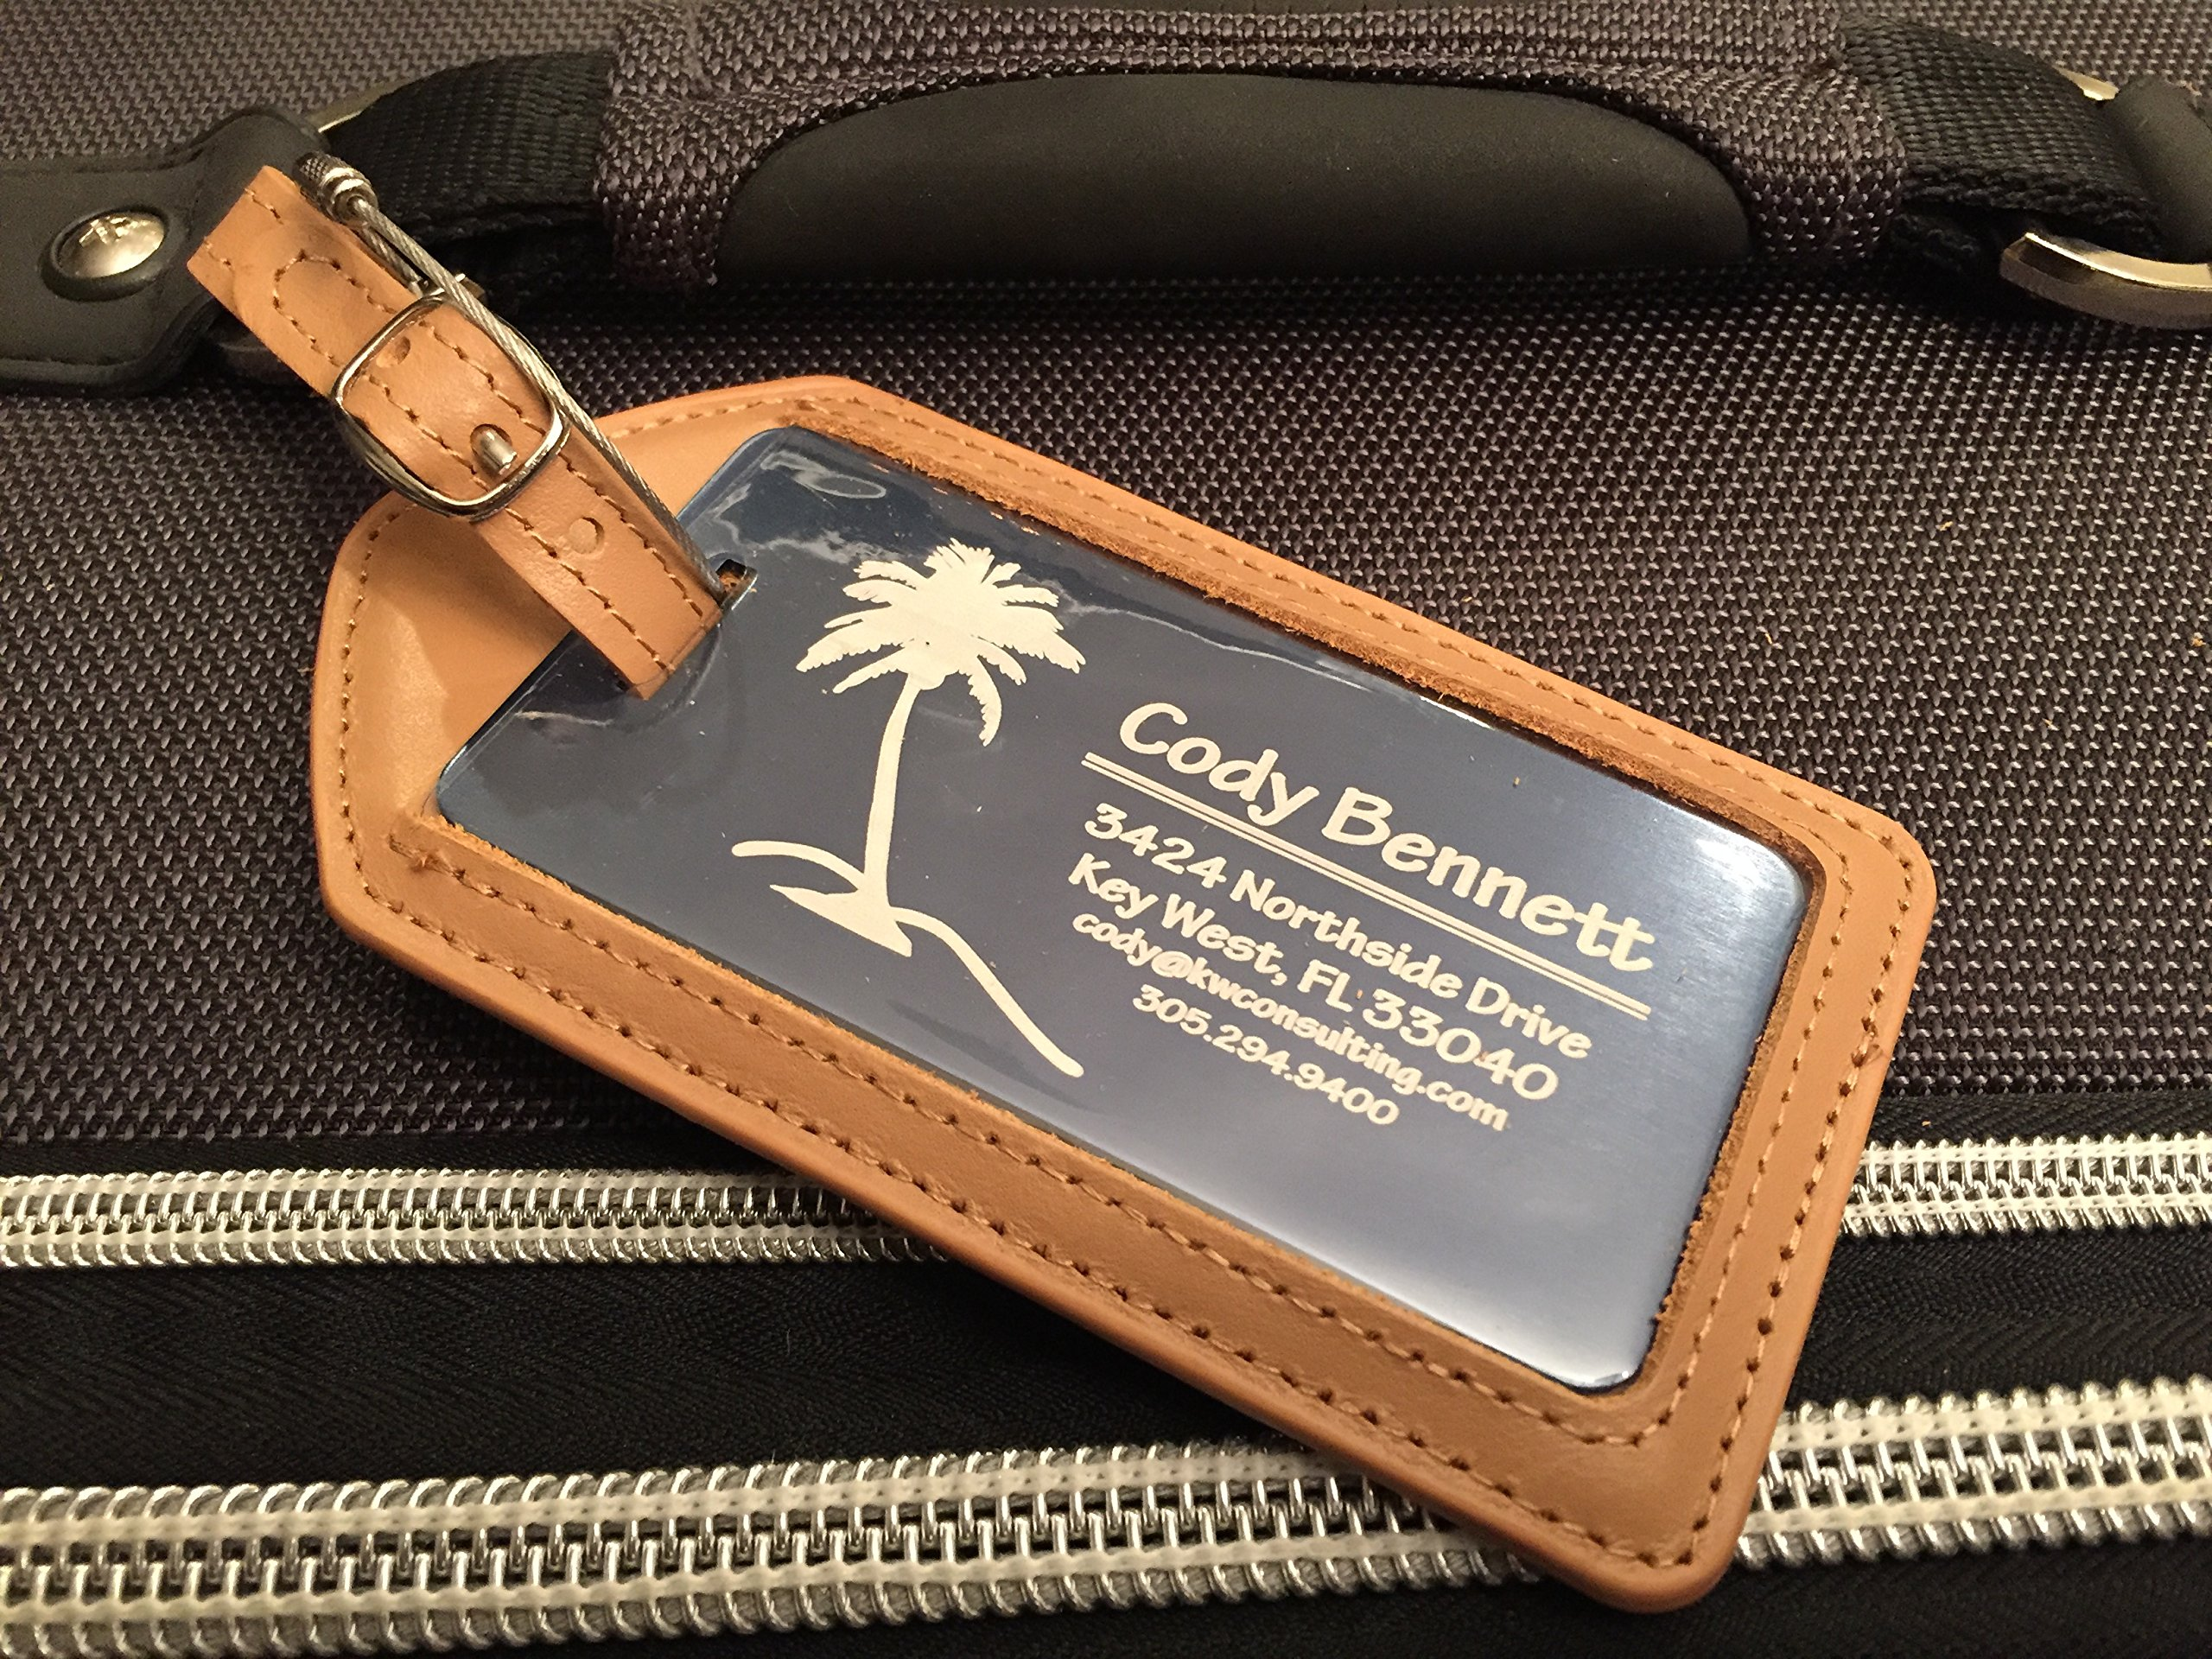 Qualtry Personalized Luggage Tags with Genuine Leather Case - Engraved Aluminum Luggage Tag, Suitcase Name Tags (Coral Leather Case) by Qualtry (Image #4)